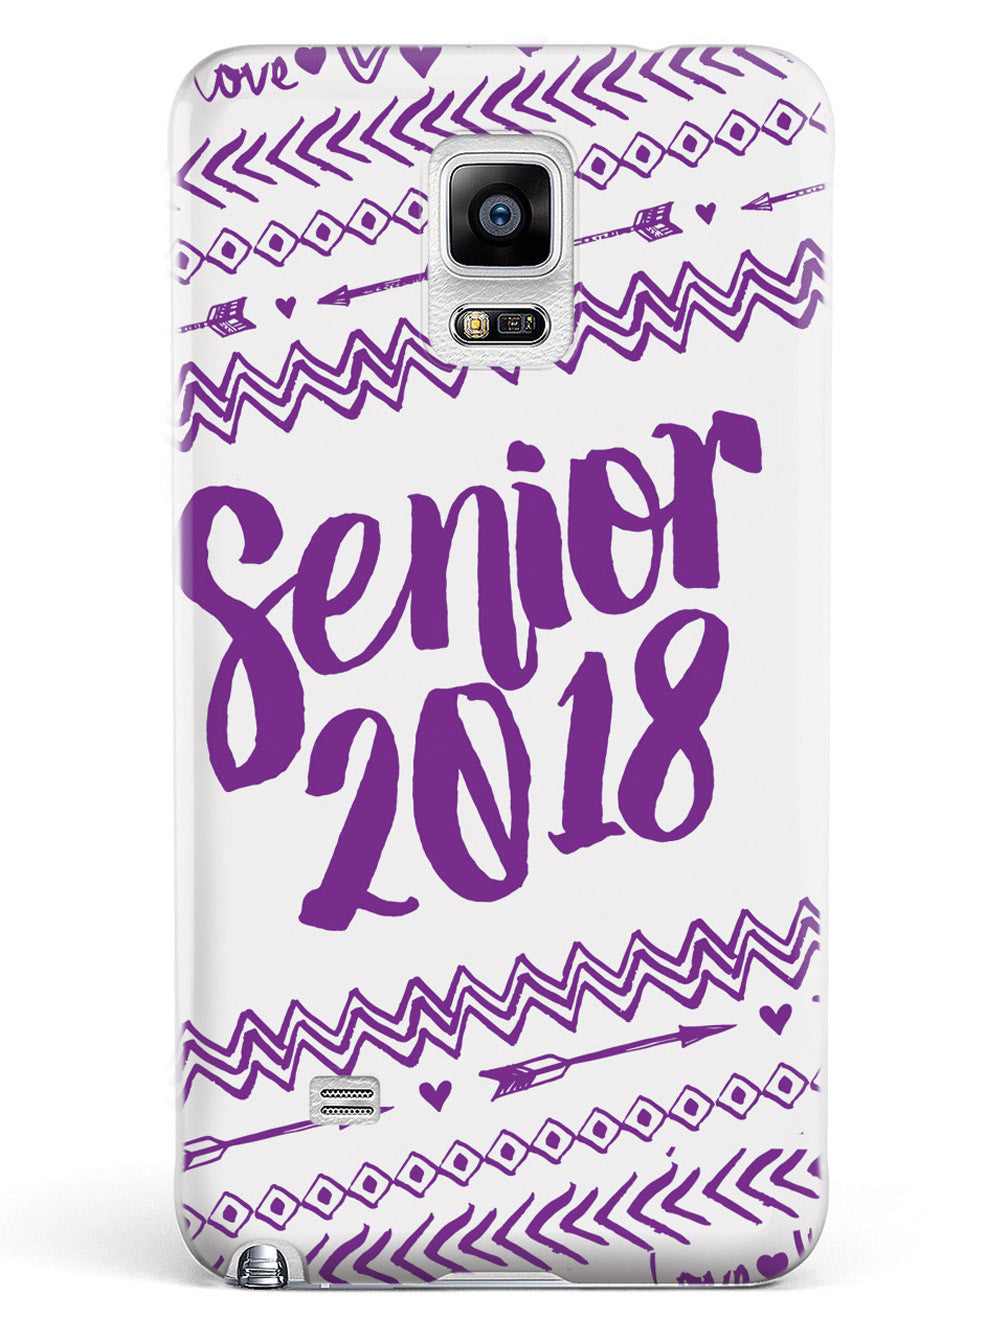 Senior 2018 - Purple Case